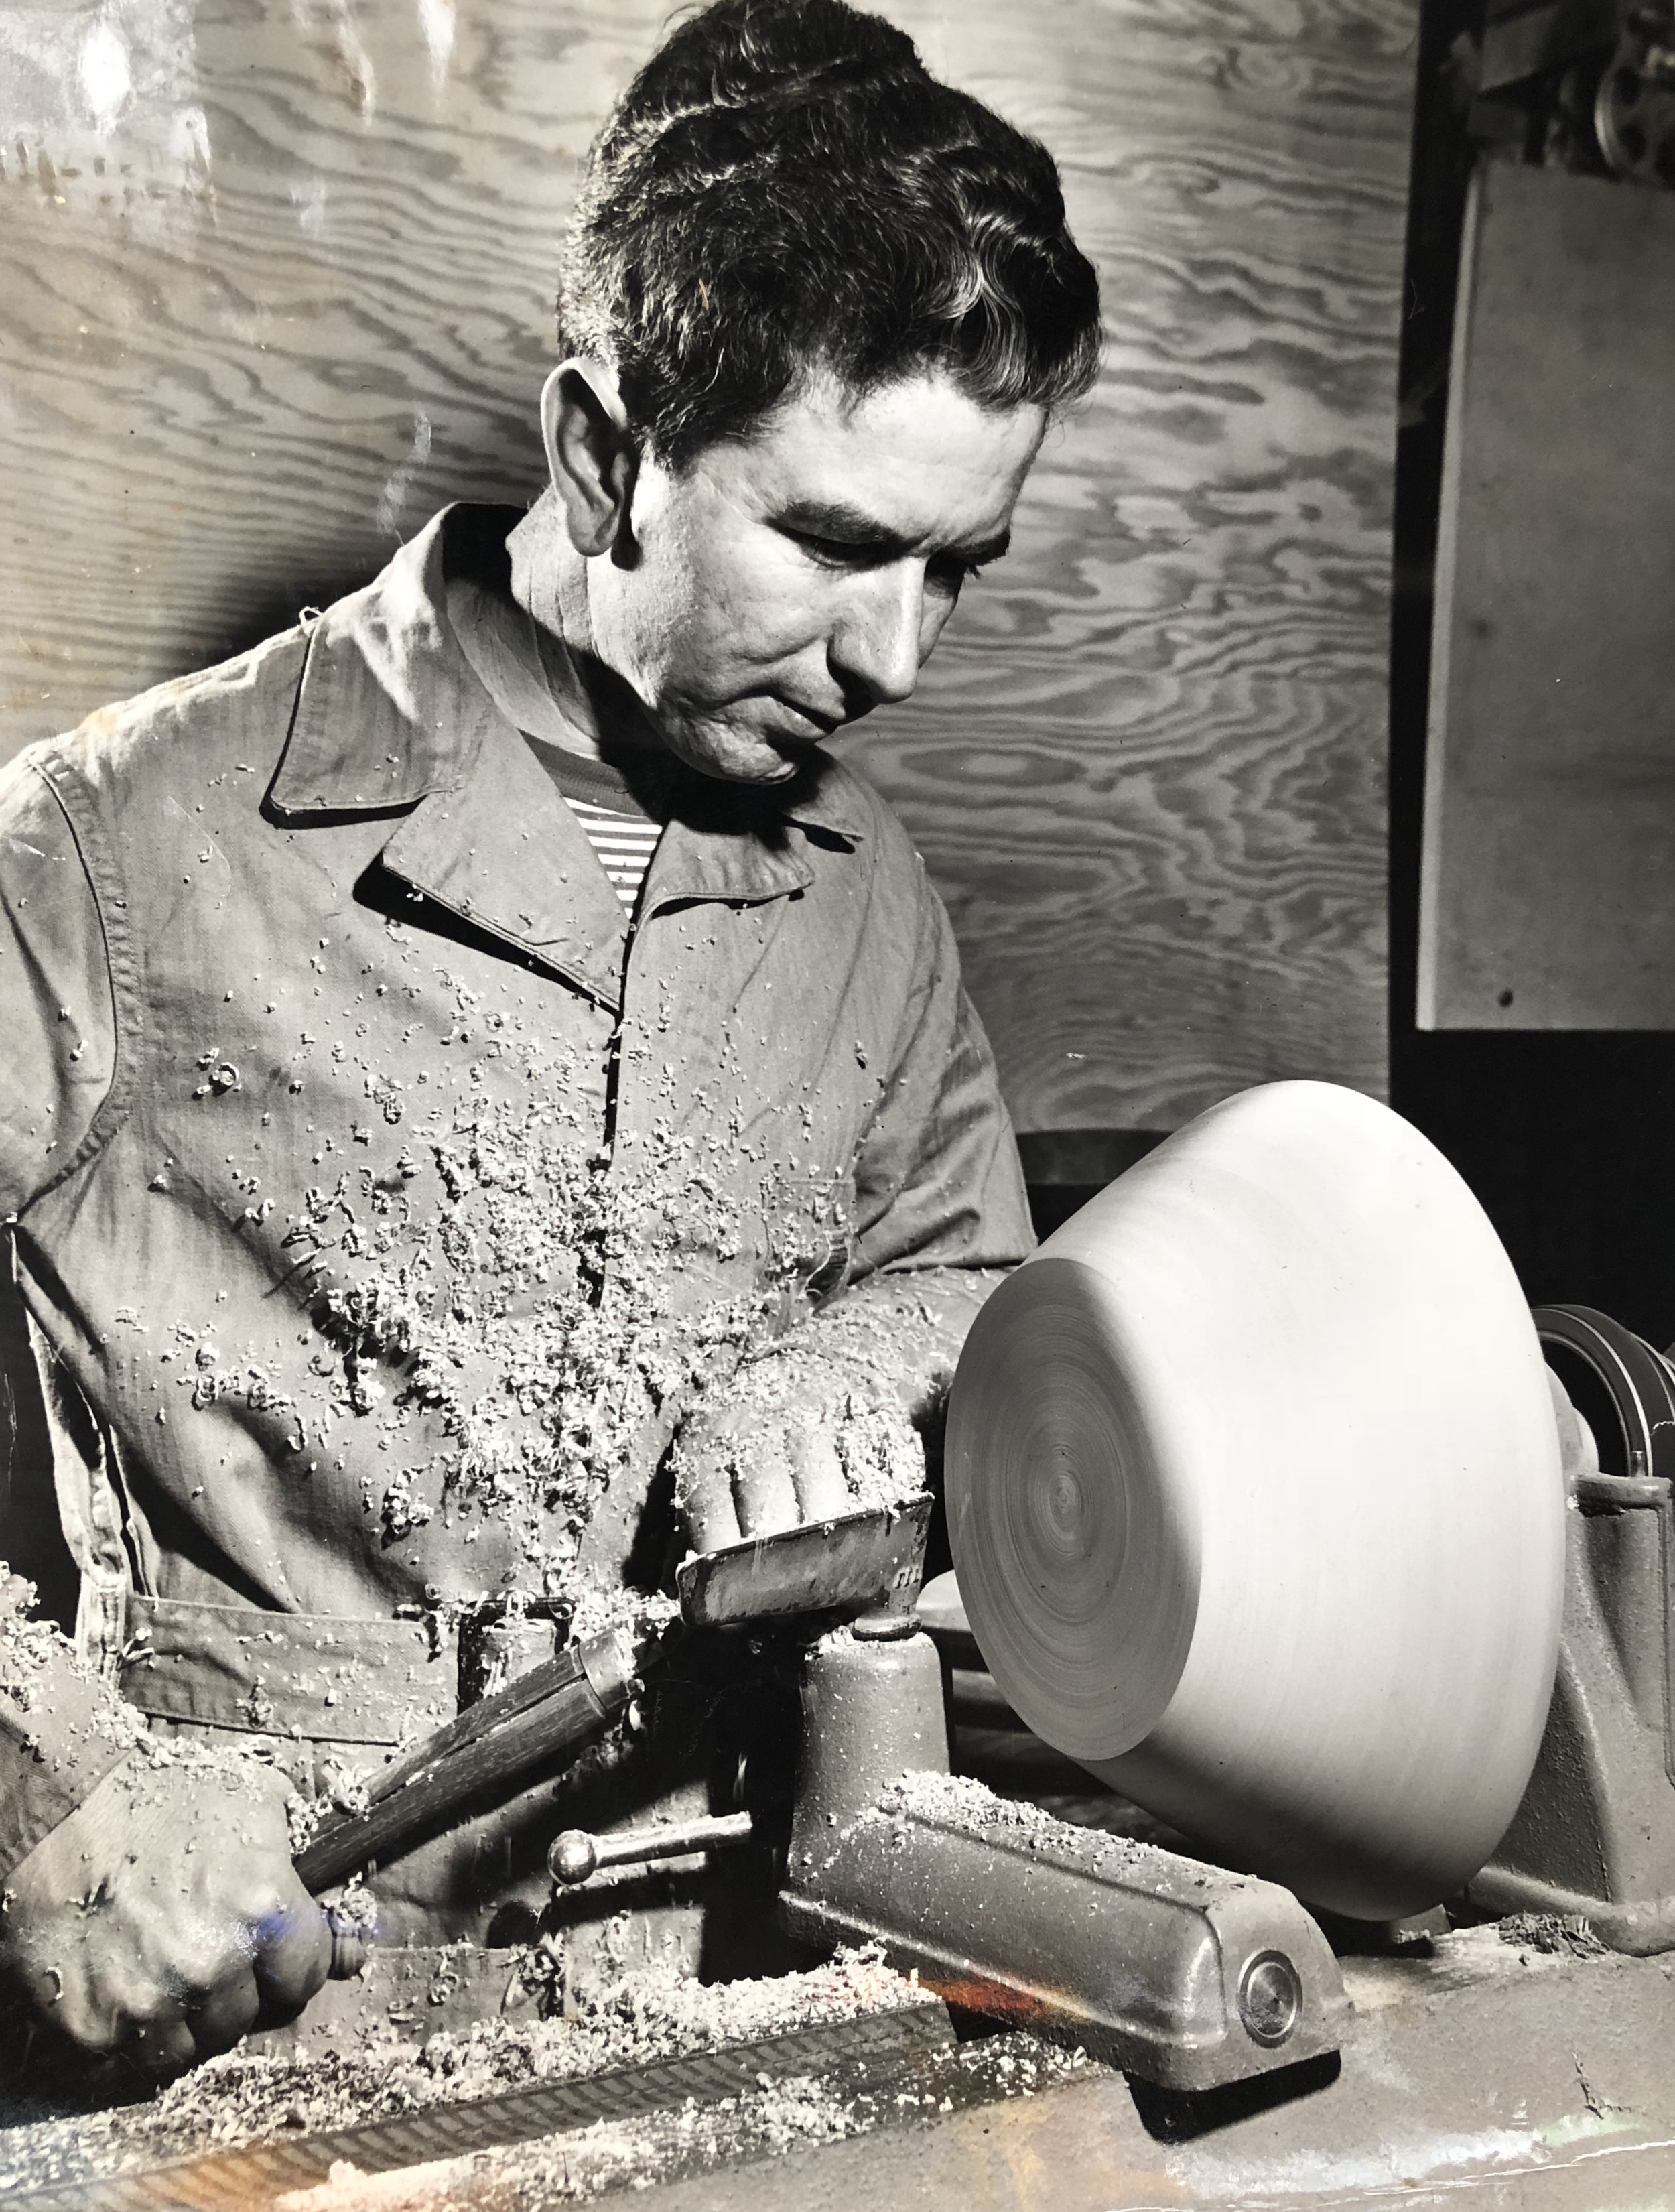 Bob Stocksdale turning a bowl on a wood lathe.